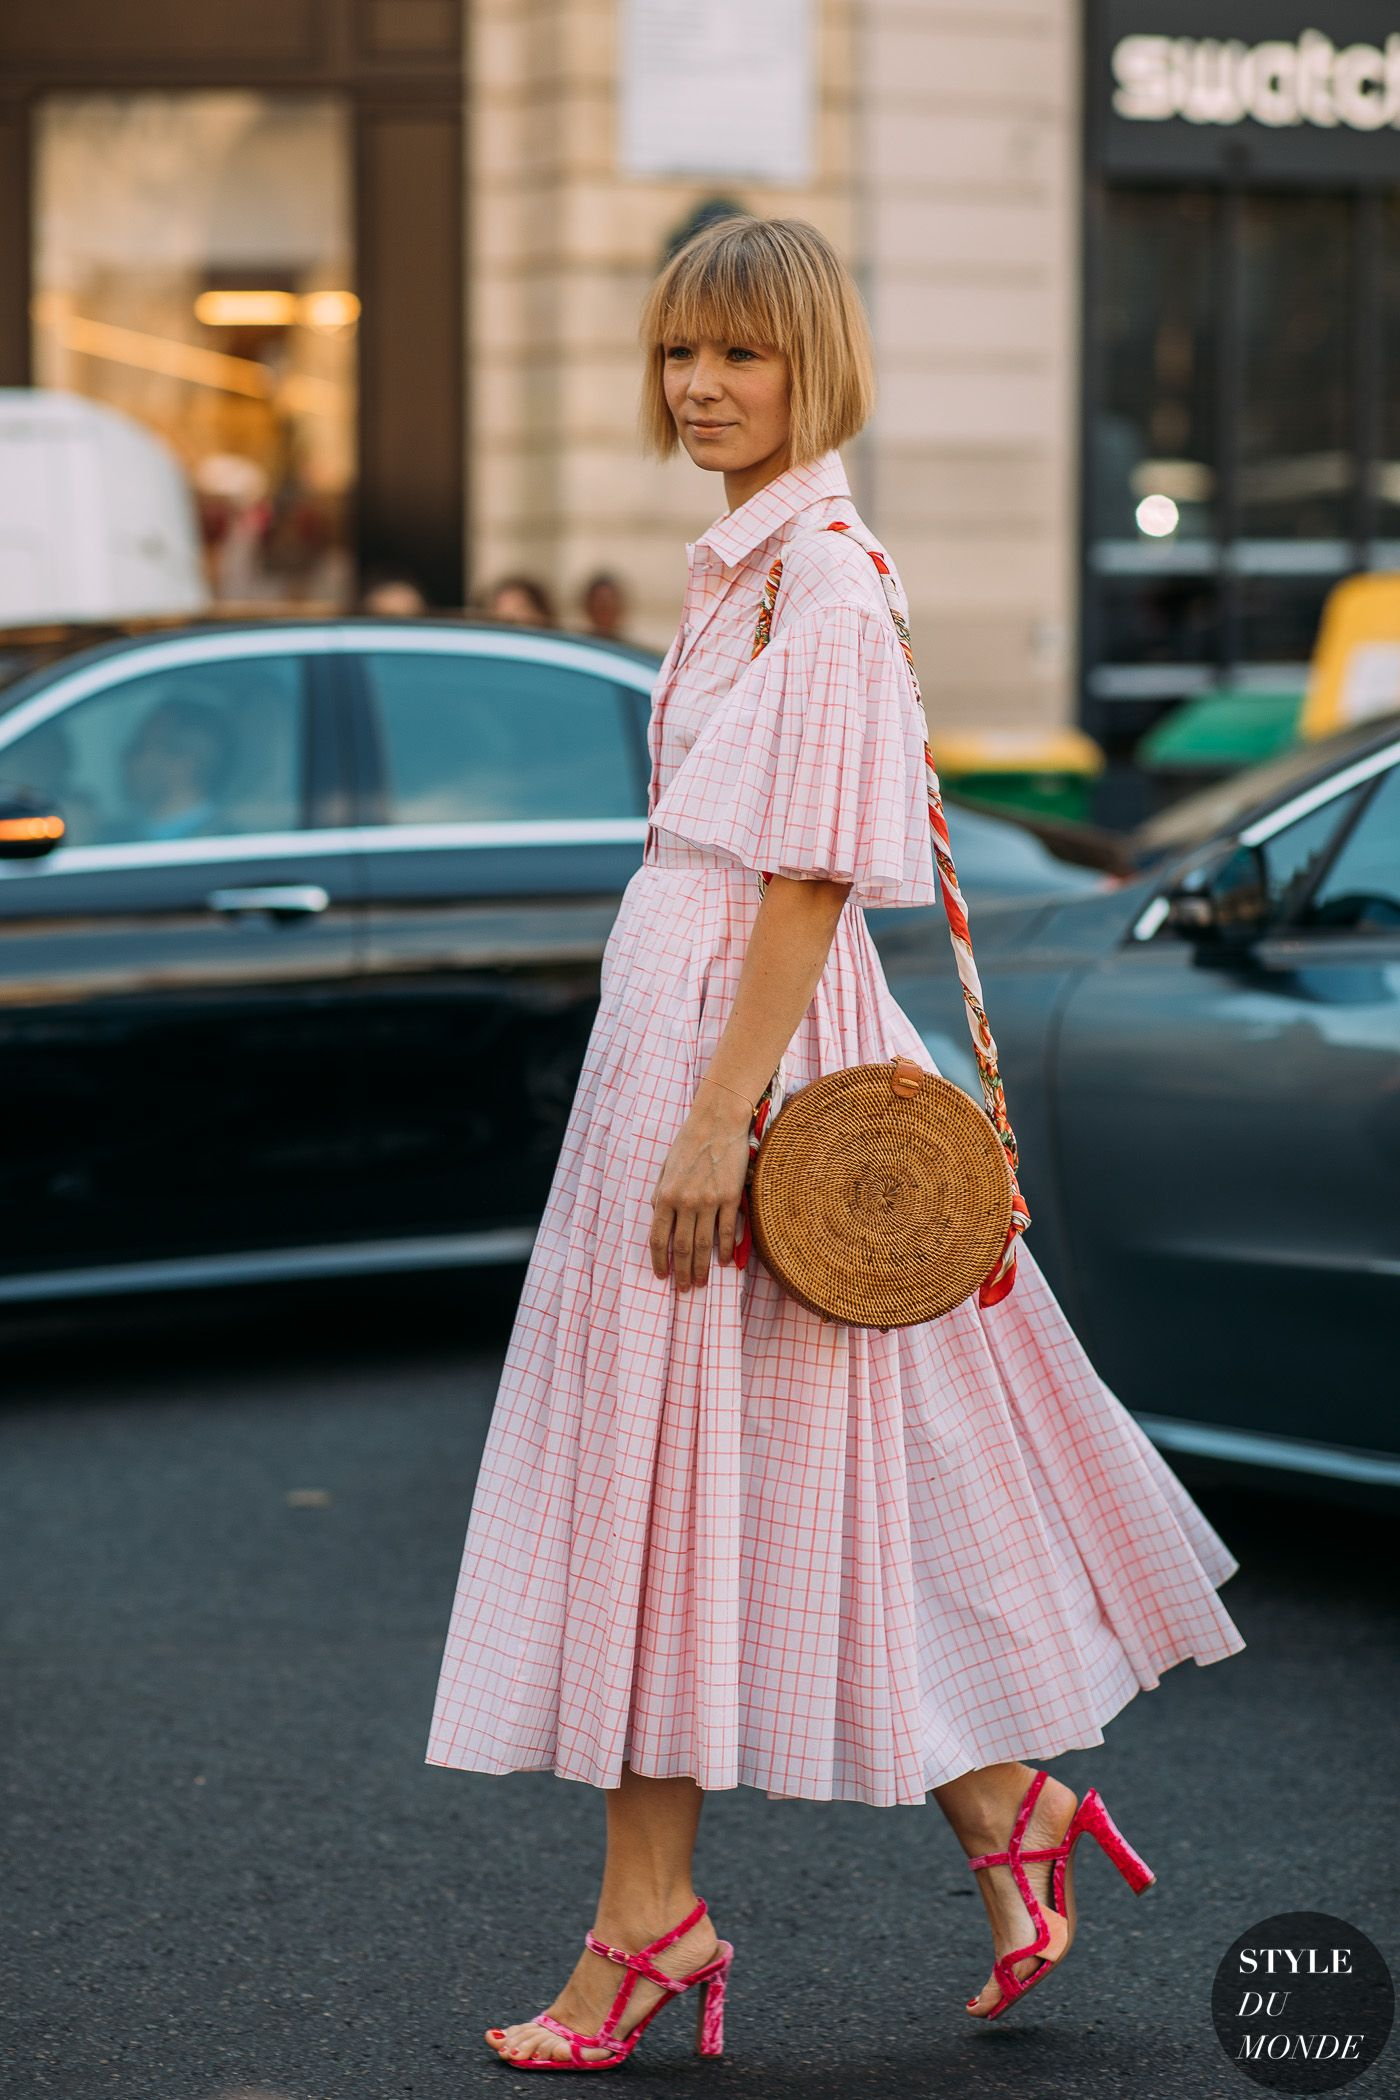 8935852437b Vika Gazinskaya by STYLEDUMONDE Street Style Fashion  Photography20180702 48A5964